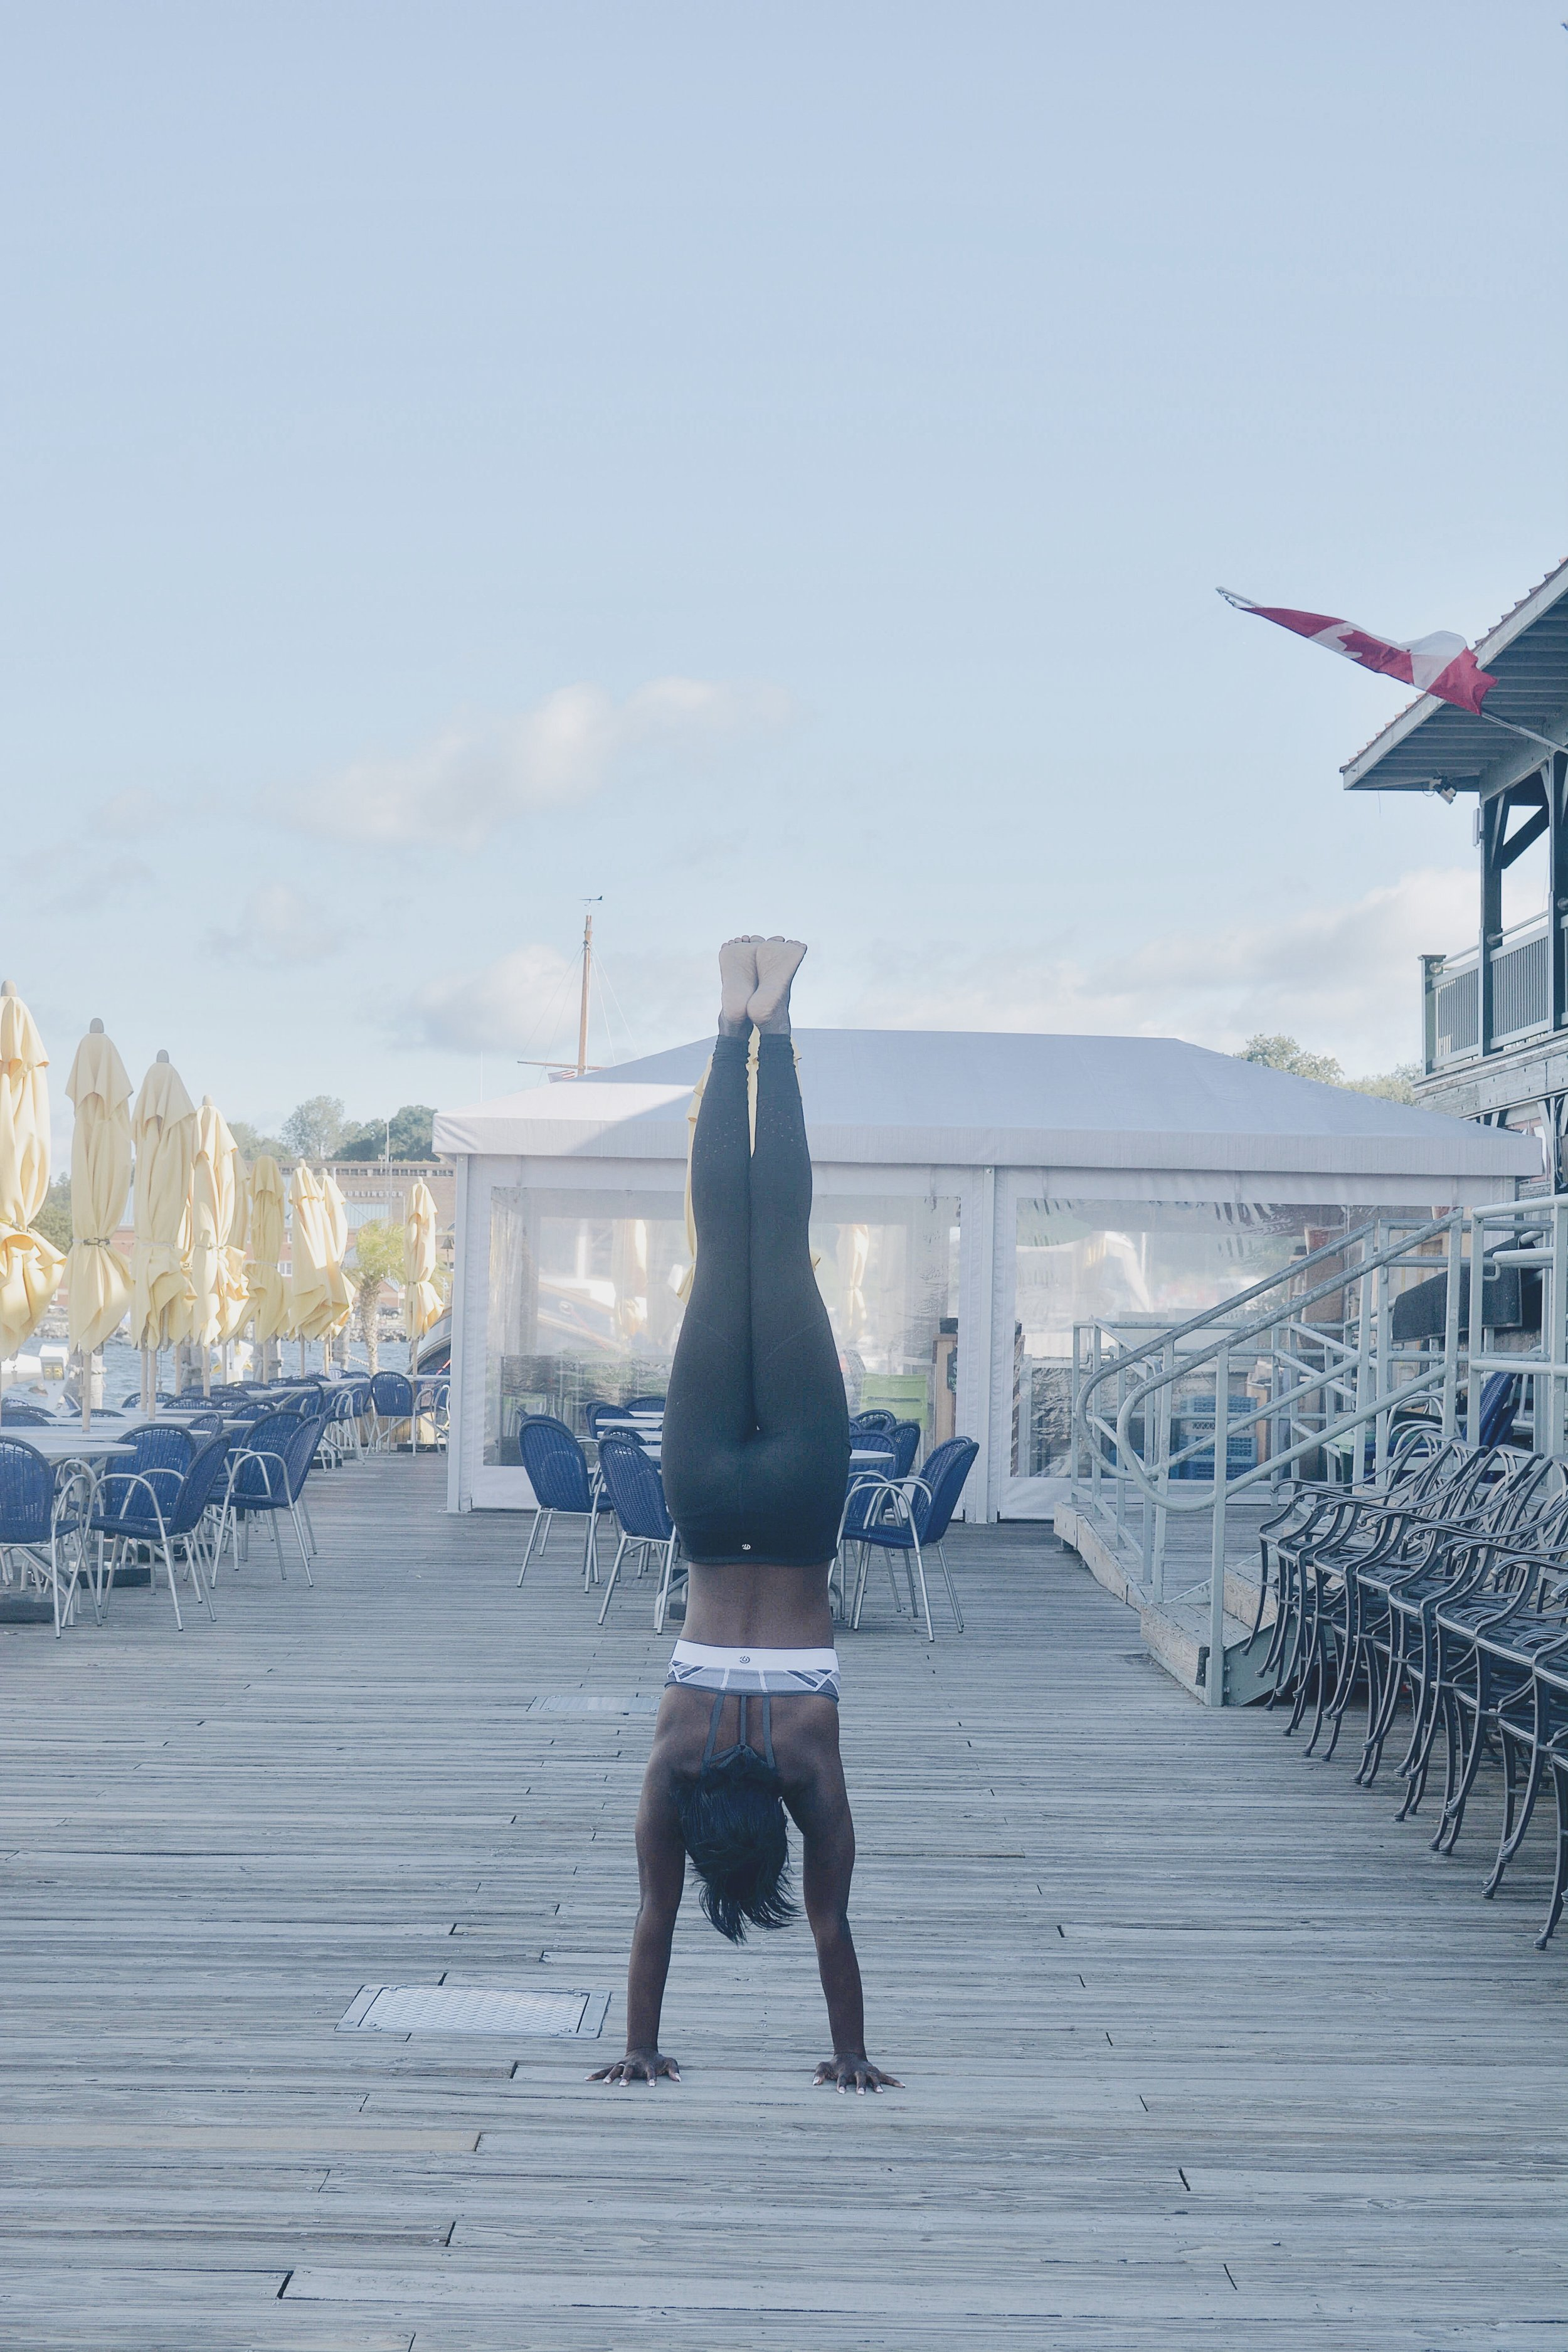 Obligatory handstand pic (although I will admit both my contacts fell out immediately after I took this picture and I did yoga basically blind).